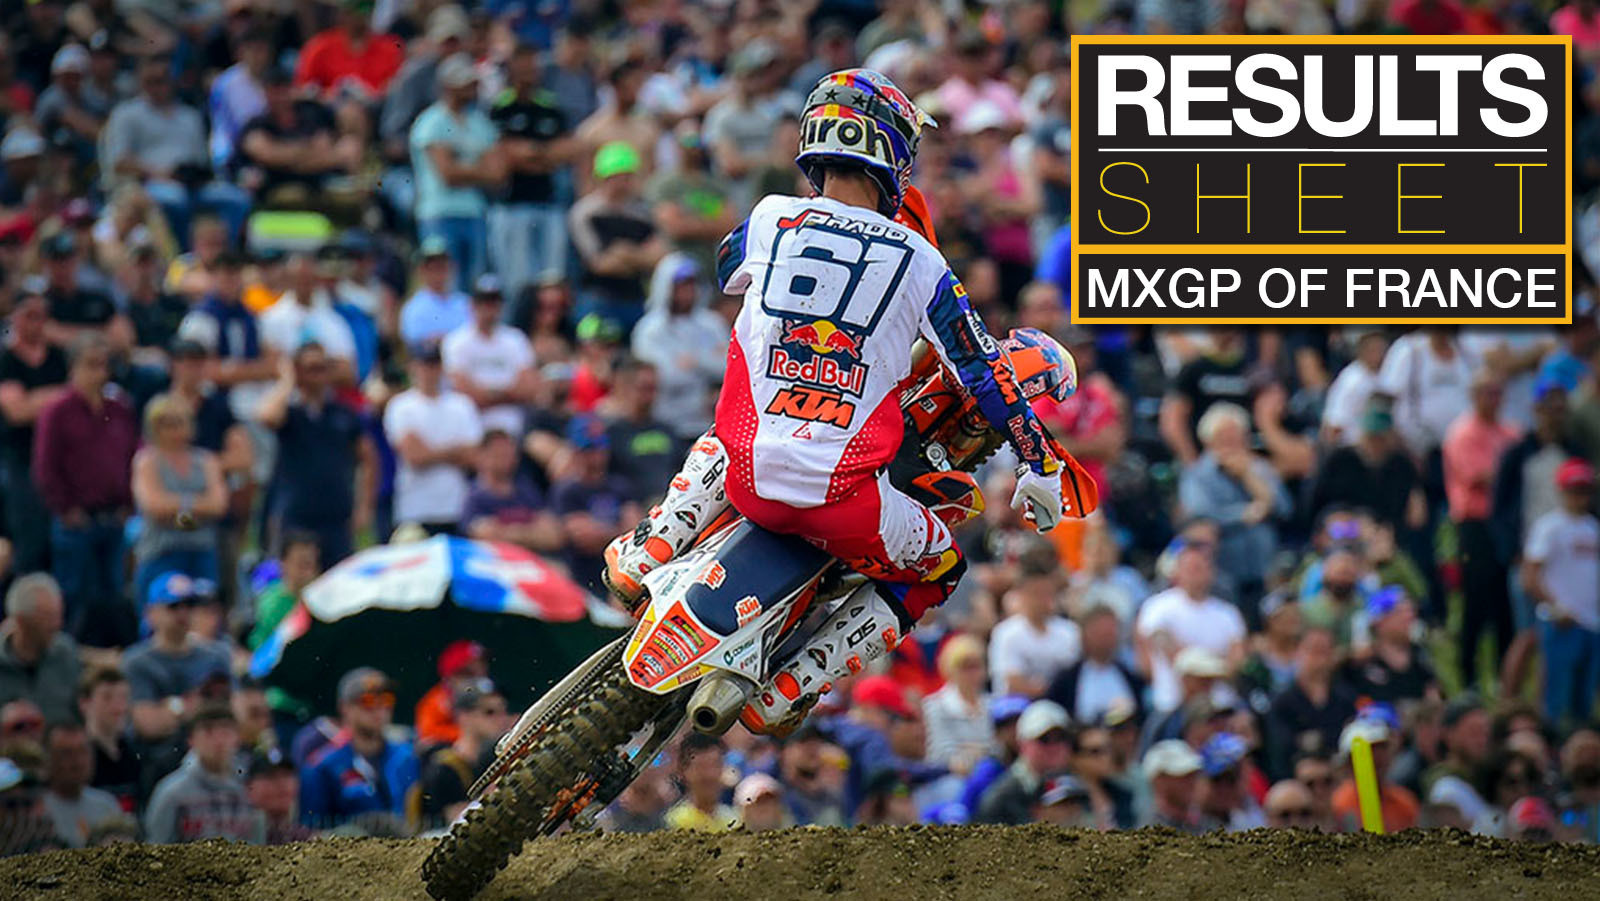 Results Sheet: 2019 MXGP of France